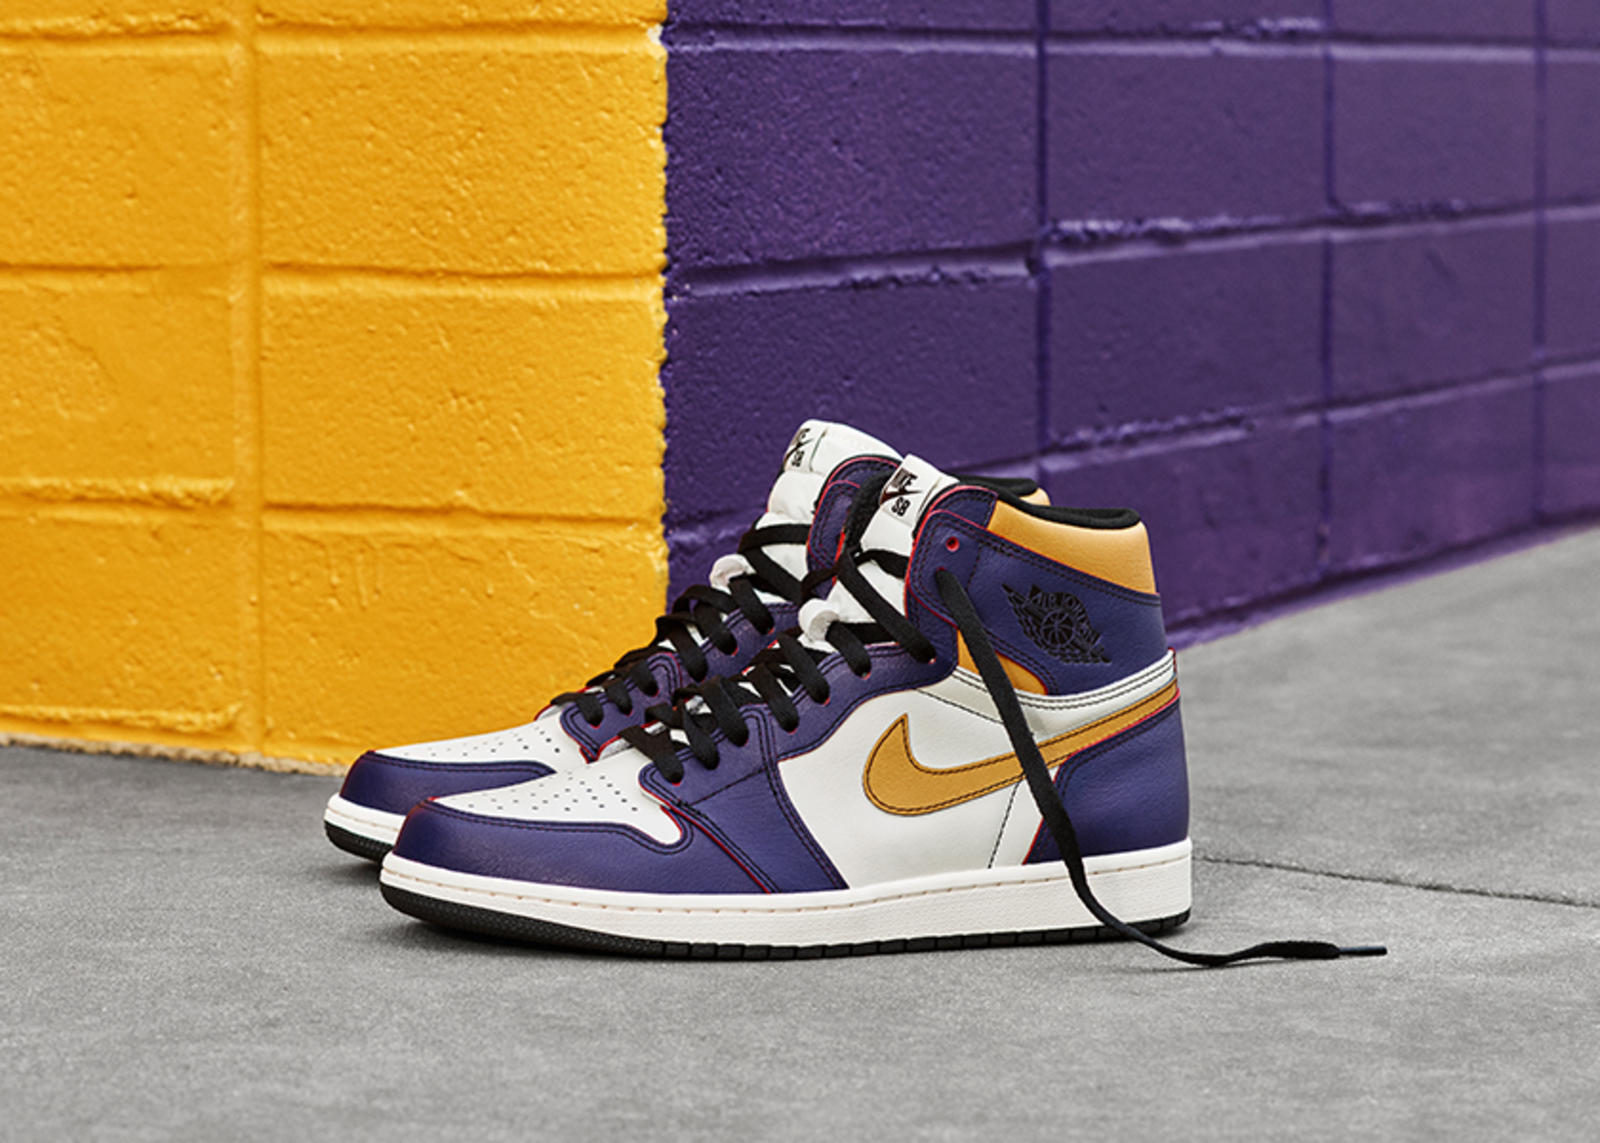 SU19_JD_TheOnes_NIKENEWS_AJ1_HIGH__native_1600.jpg